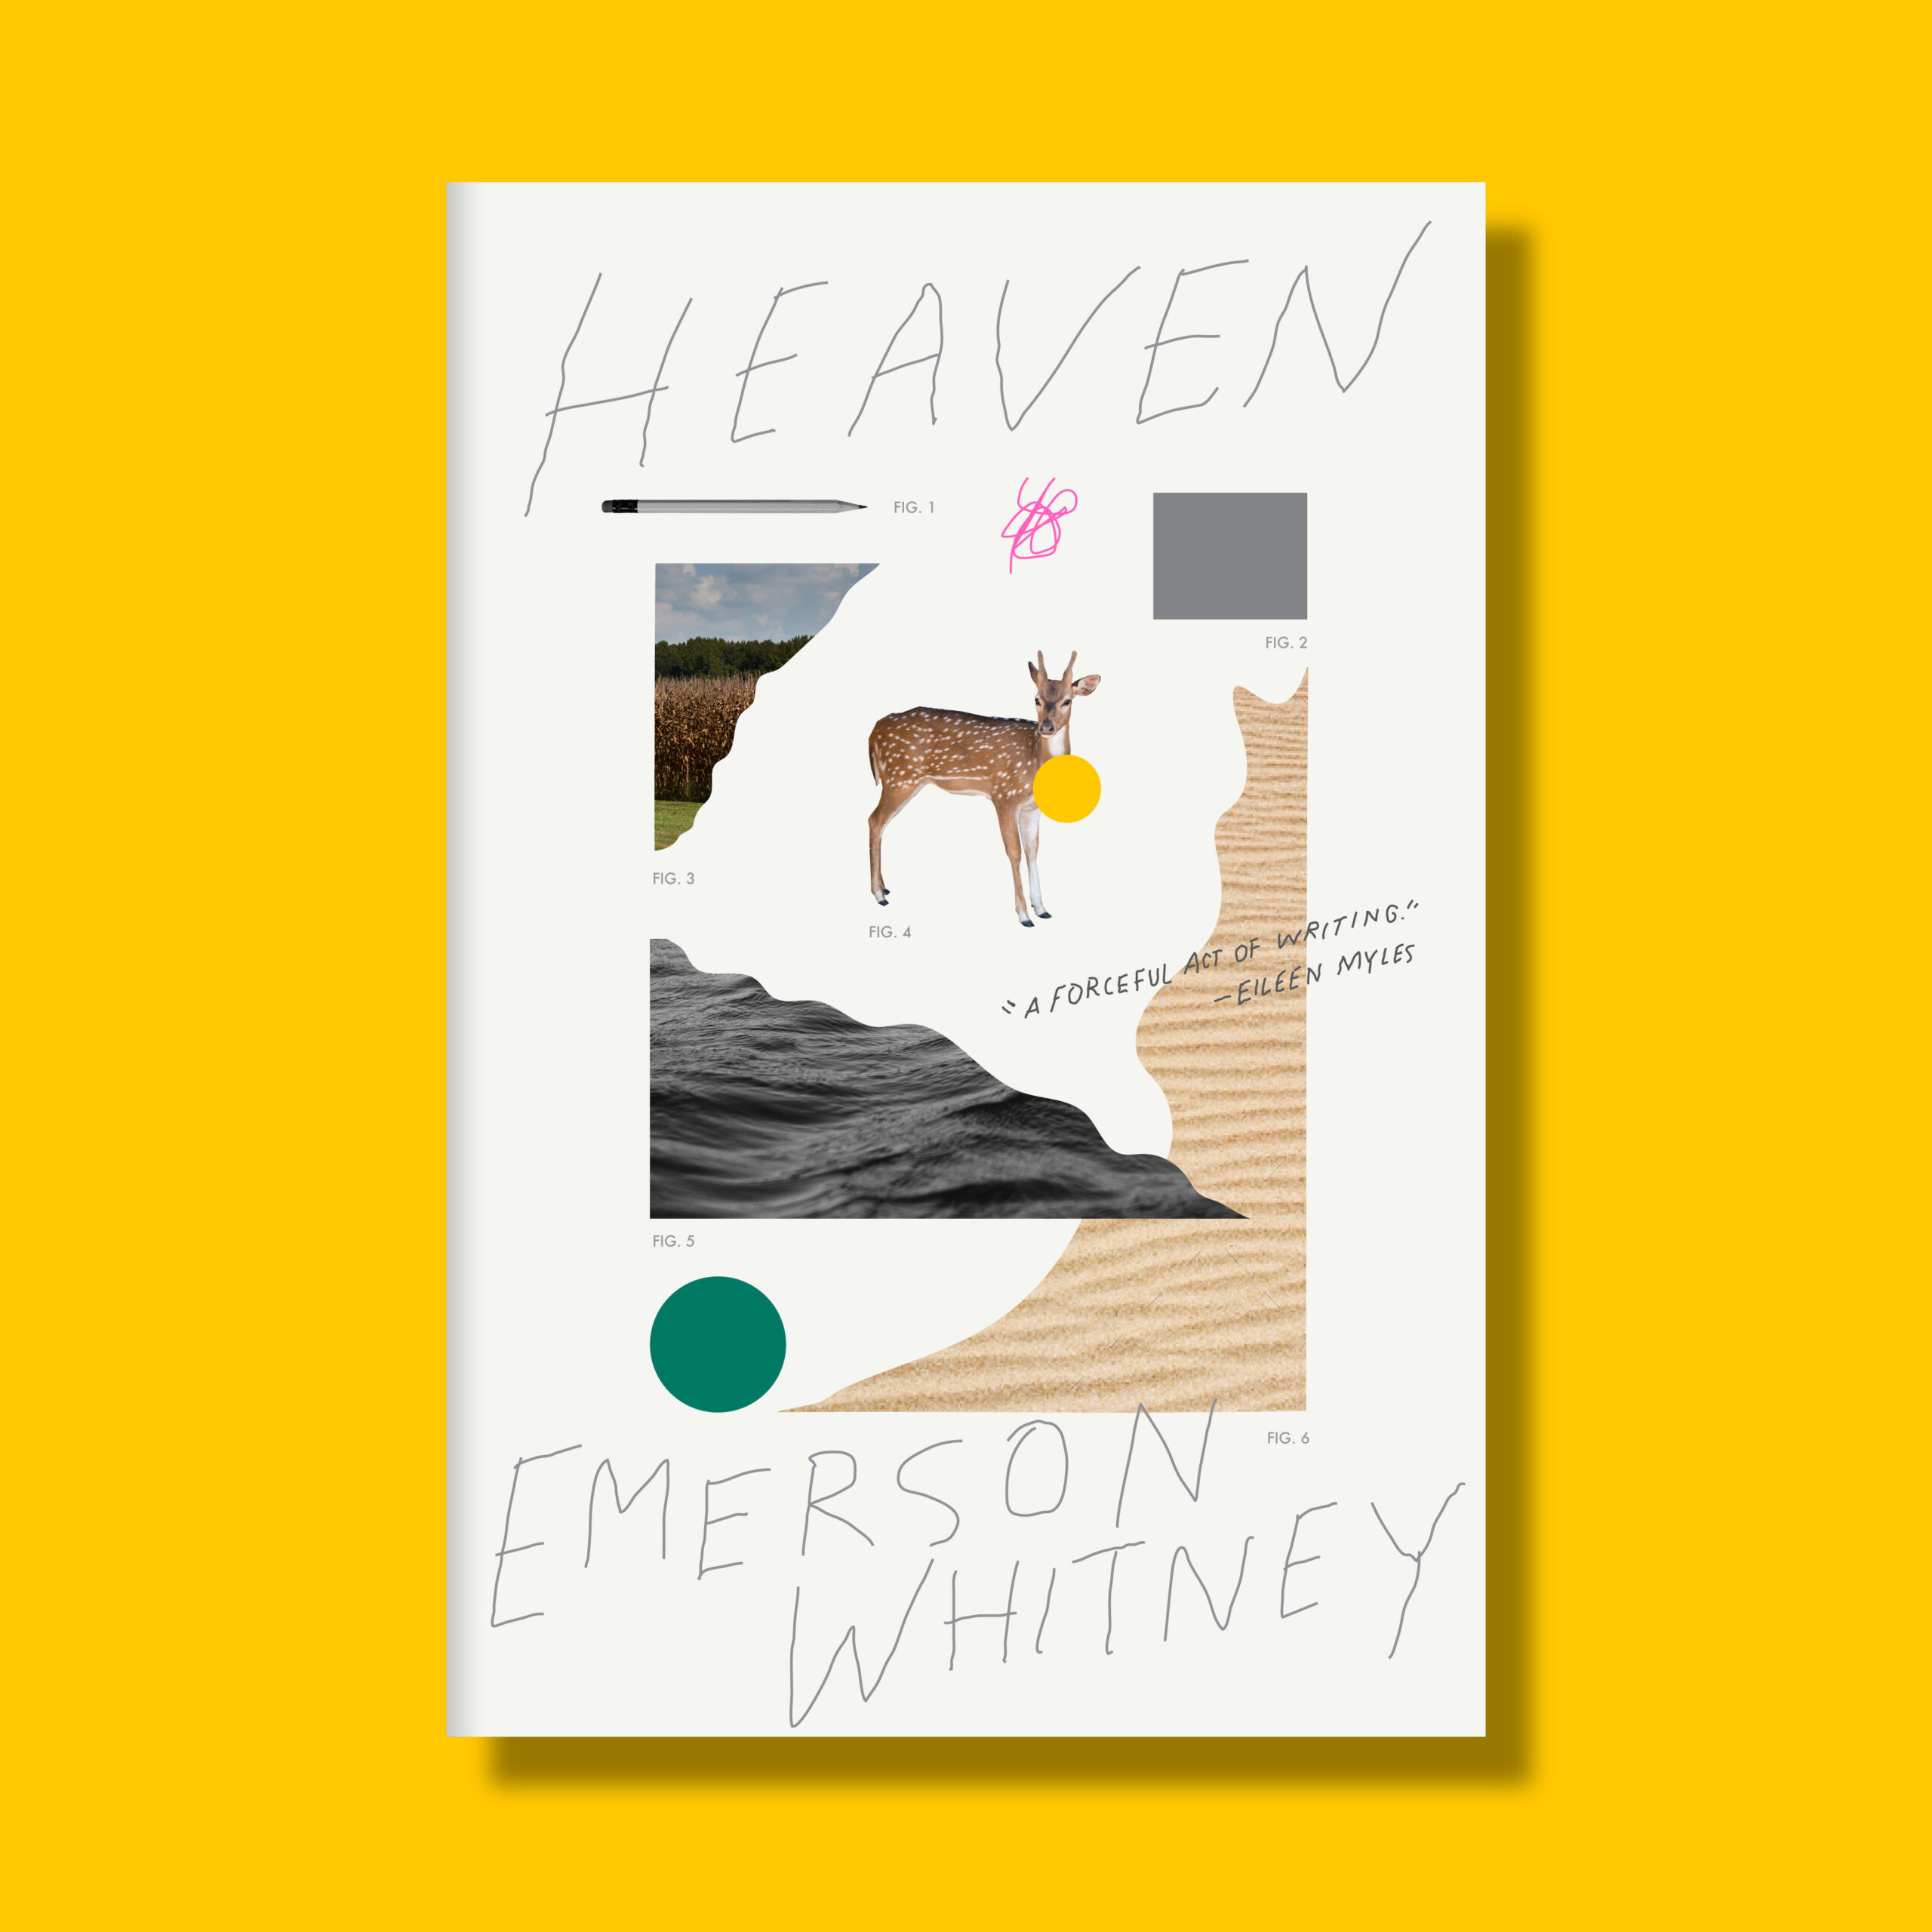 Heaven, Cover by Sunra Thompson, McSweeney's, Emerson Whitney